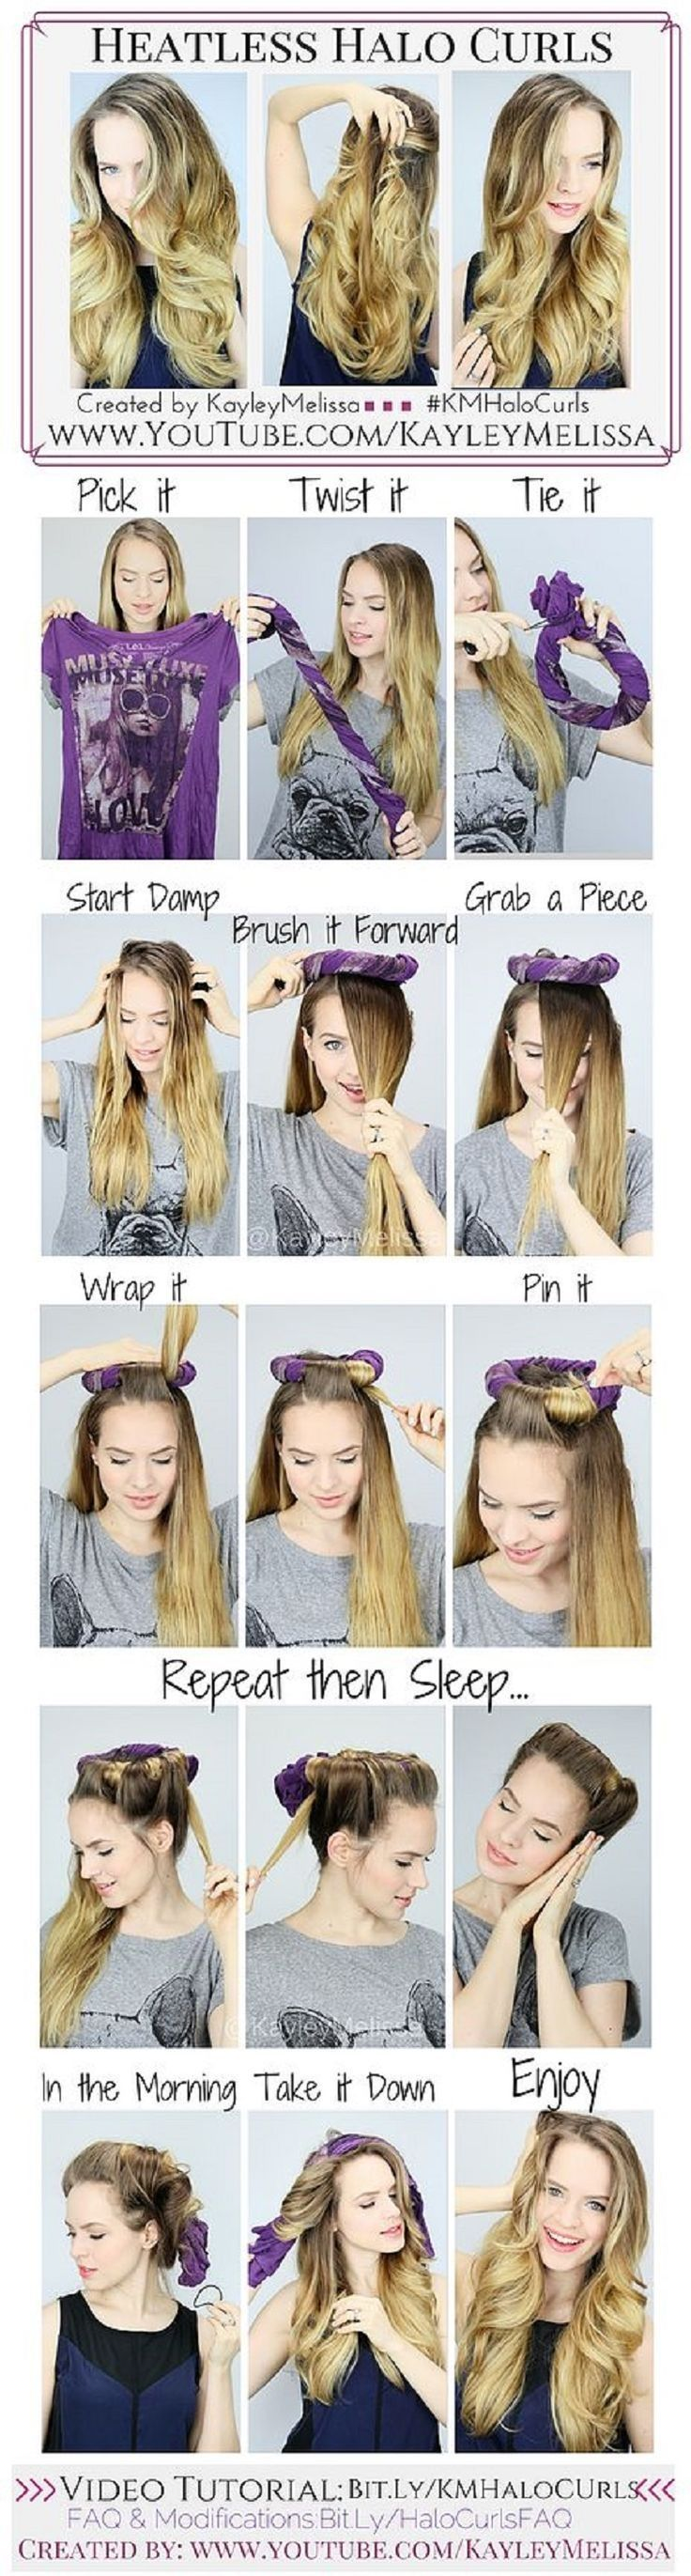 Pin by devin ryder on hair pinterest hair style curly and